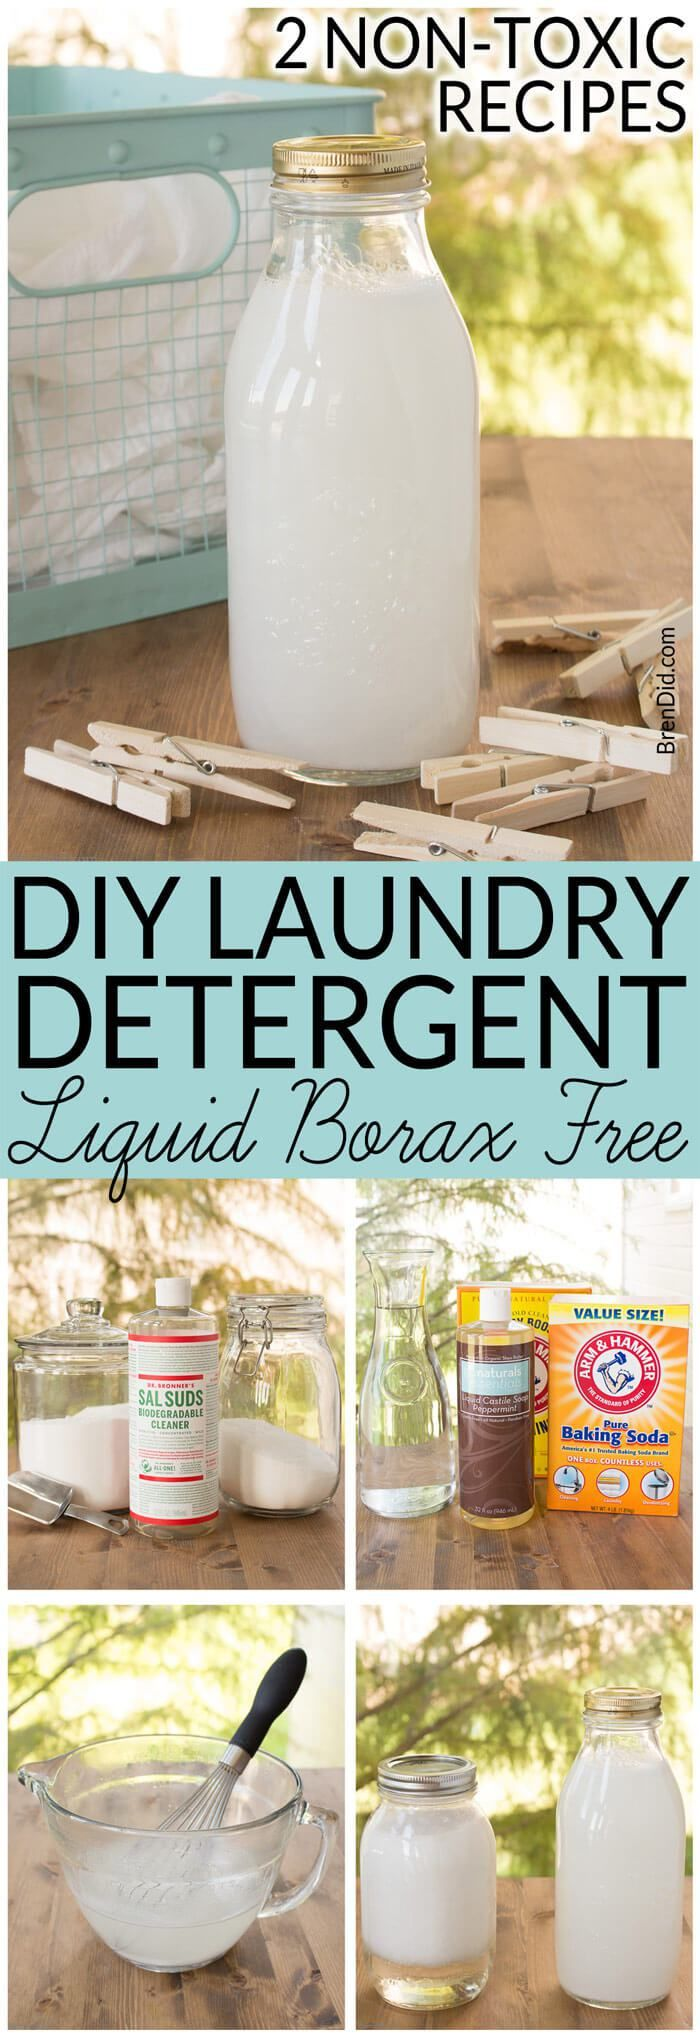 5393 best home cleaning hacks and organizing ideas images on diy laundry detergent liquid 2 non toxic borax free recipes solutioingenieria Image collections